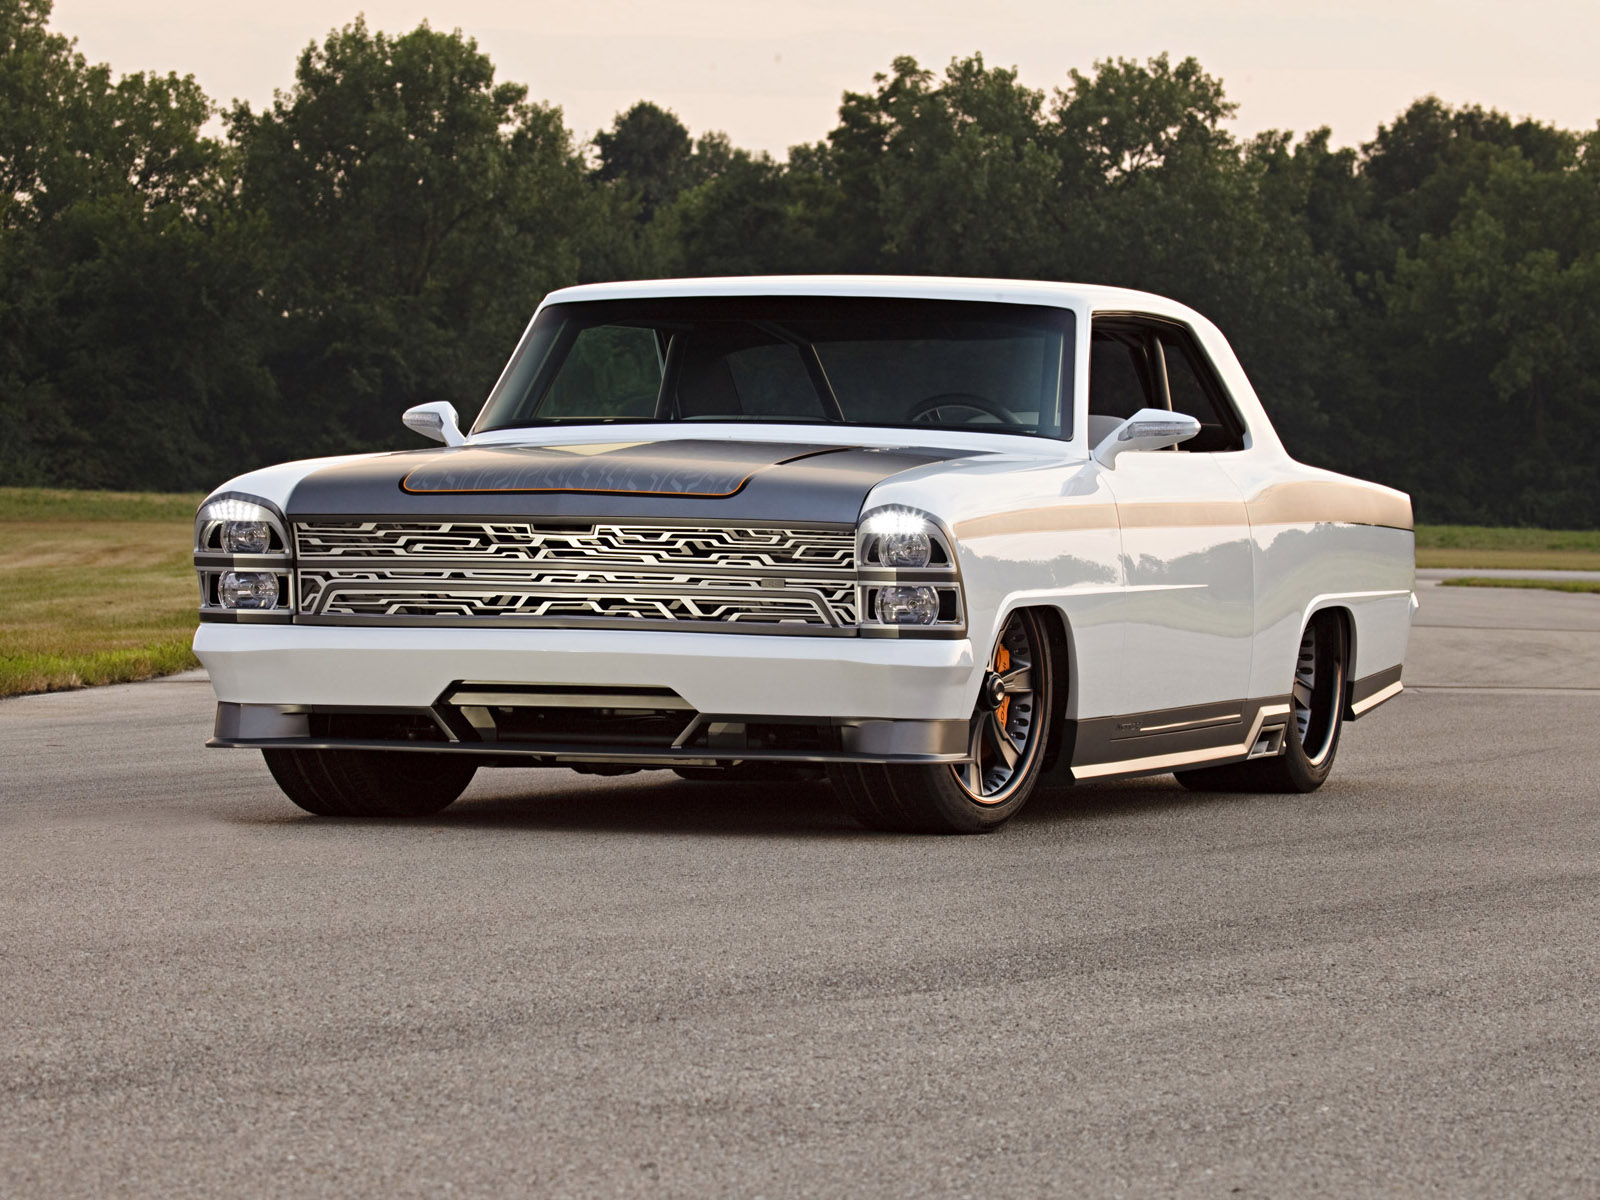 1967 Chevy Nova muscle hot rods rod classic wallpaper background